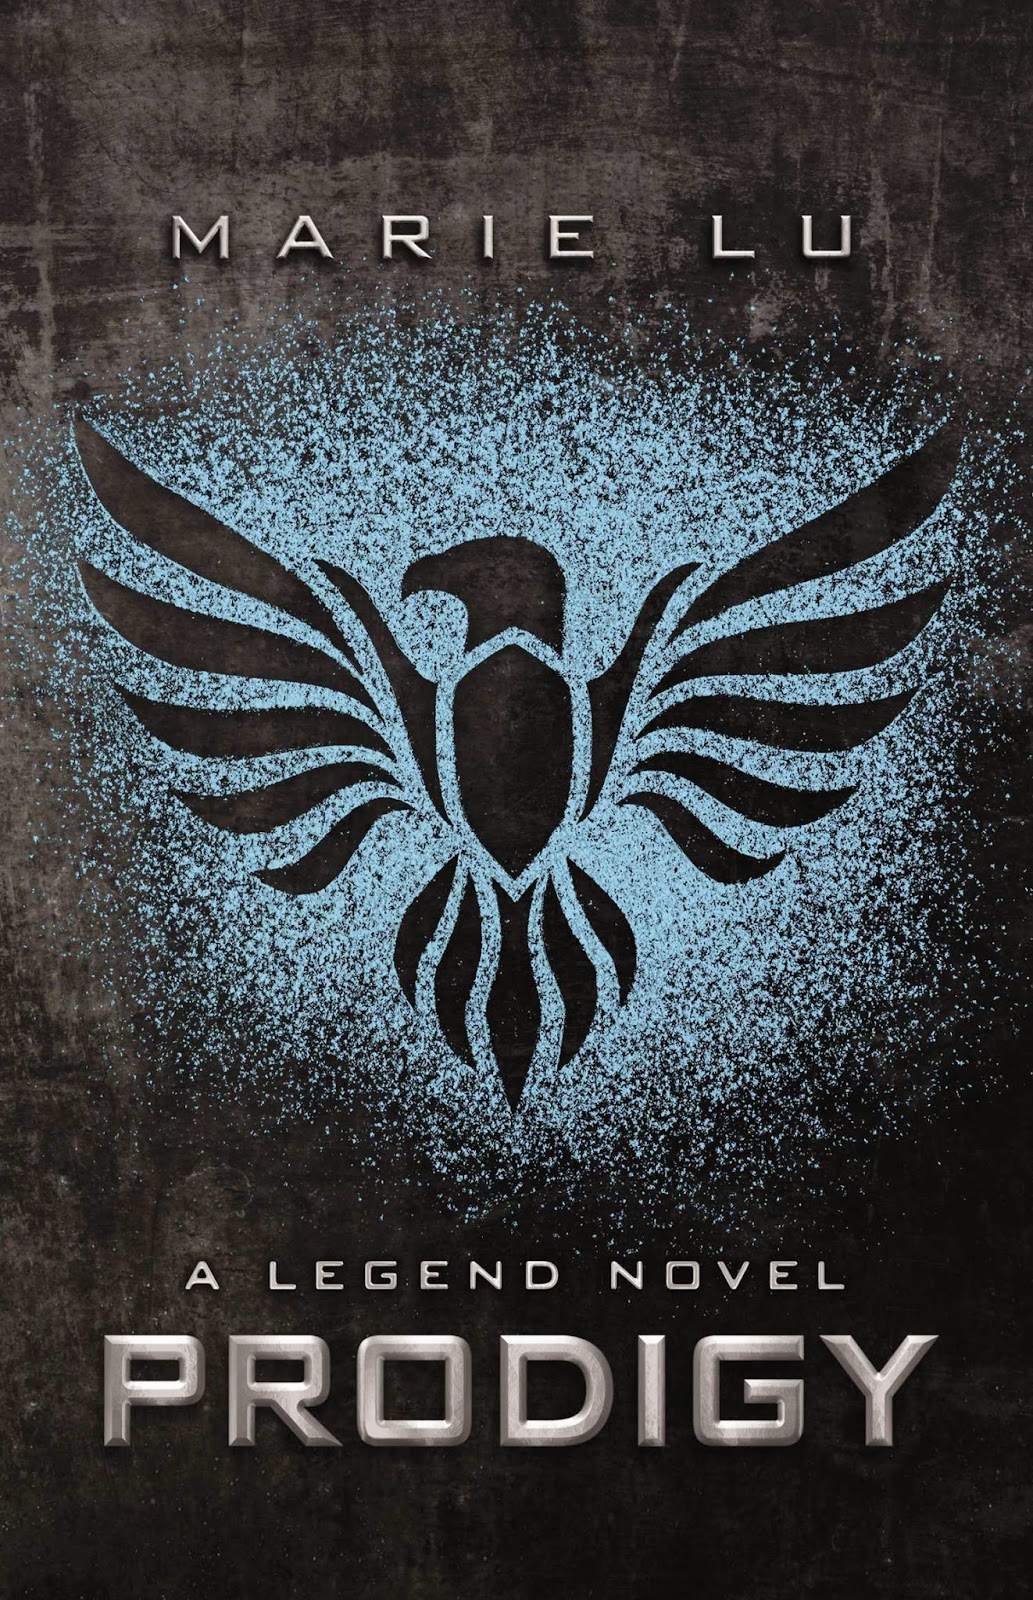 Prodigy (Legend, book 2) by Marie Lu